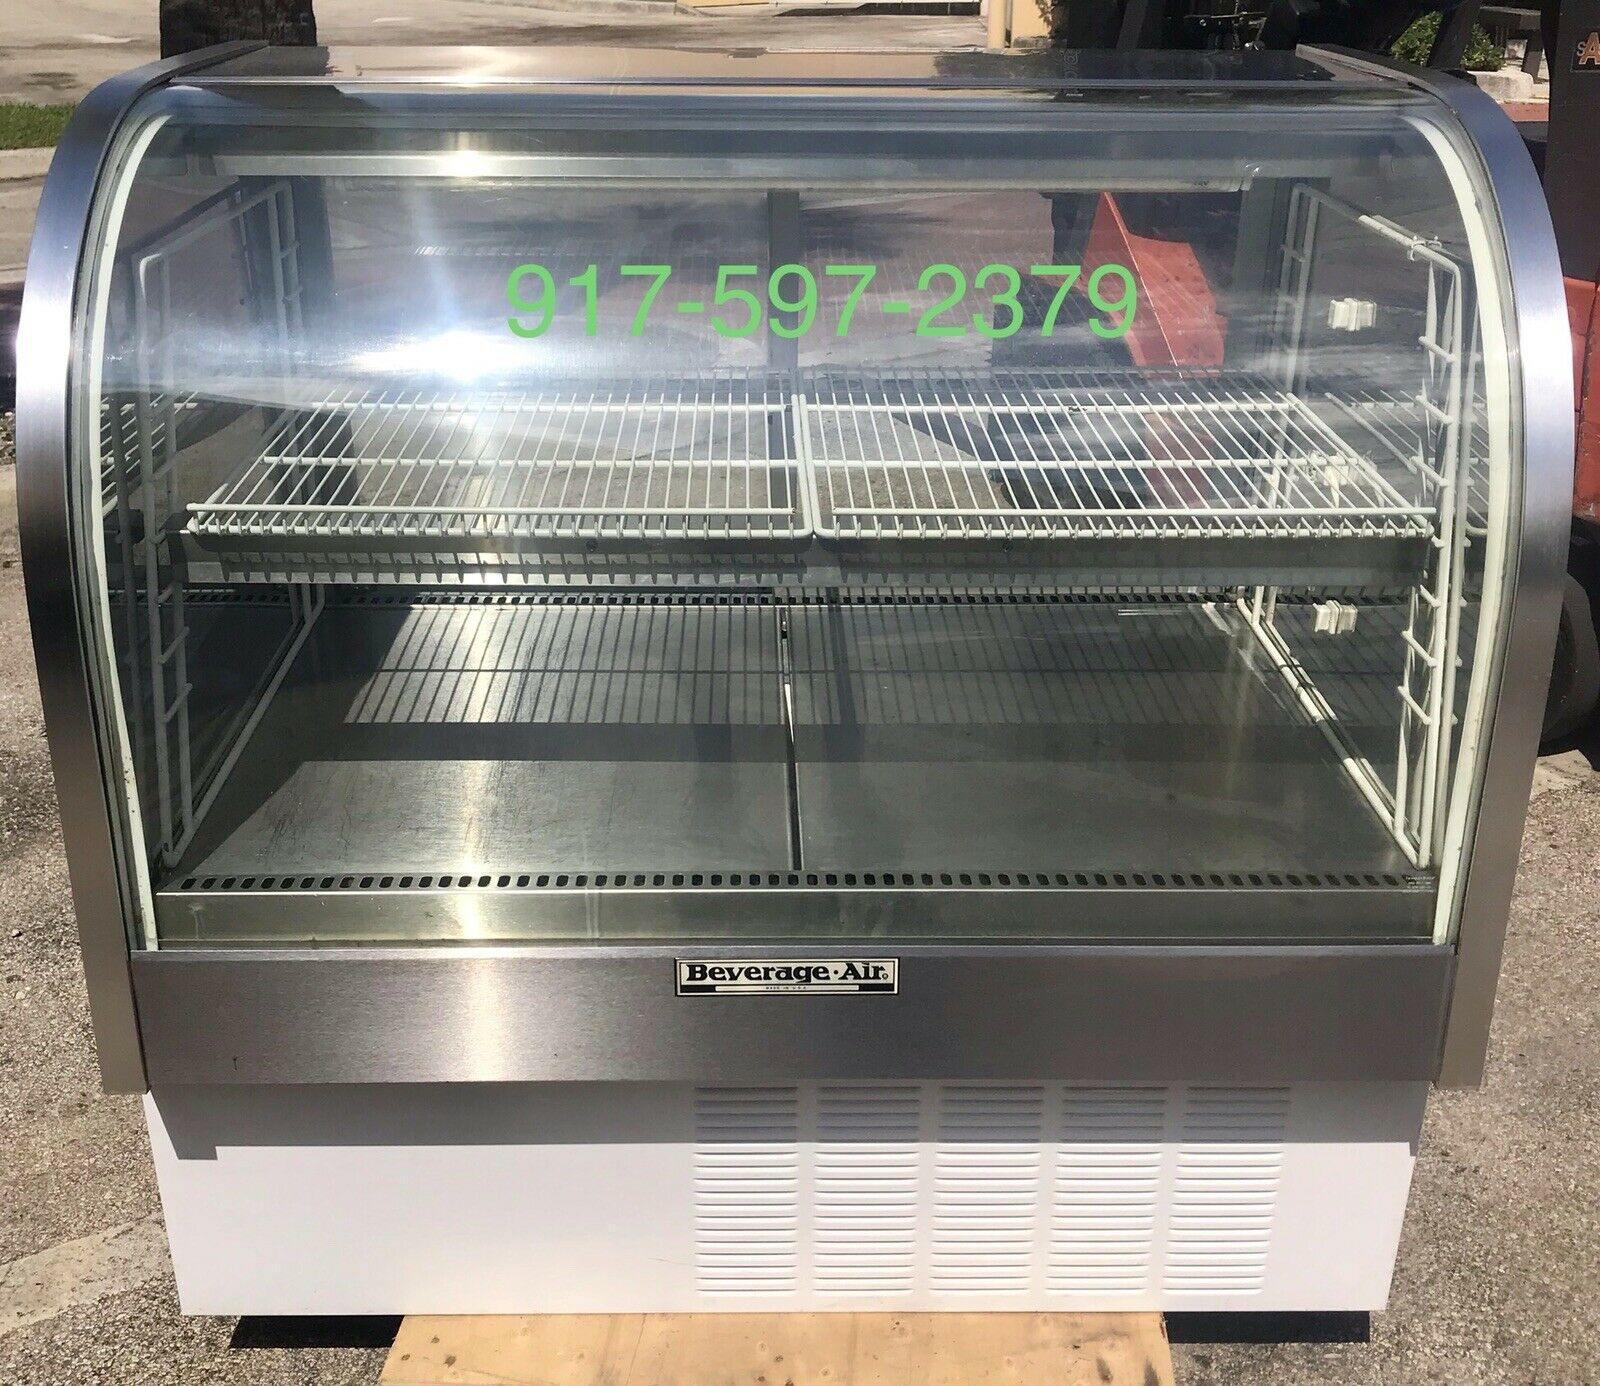 "Bev Air Curved 48"" Glass Merchandiser refrigerated food deli meat display case"